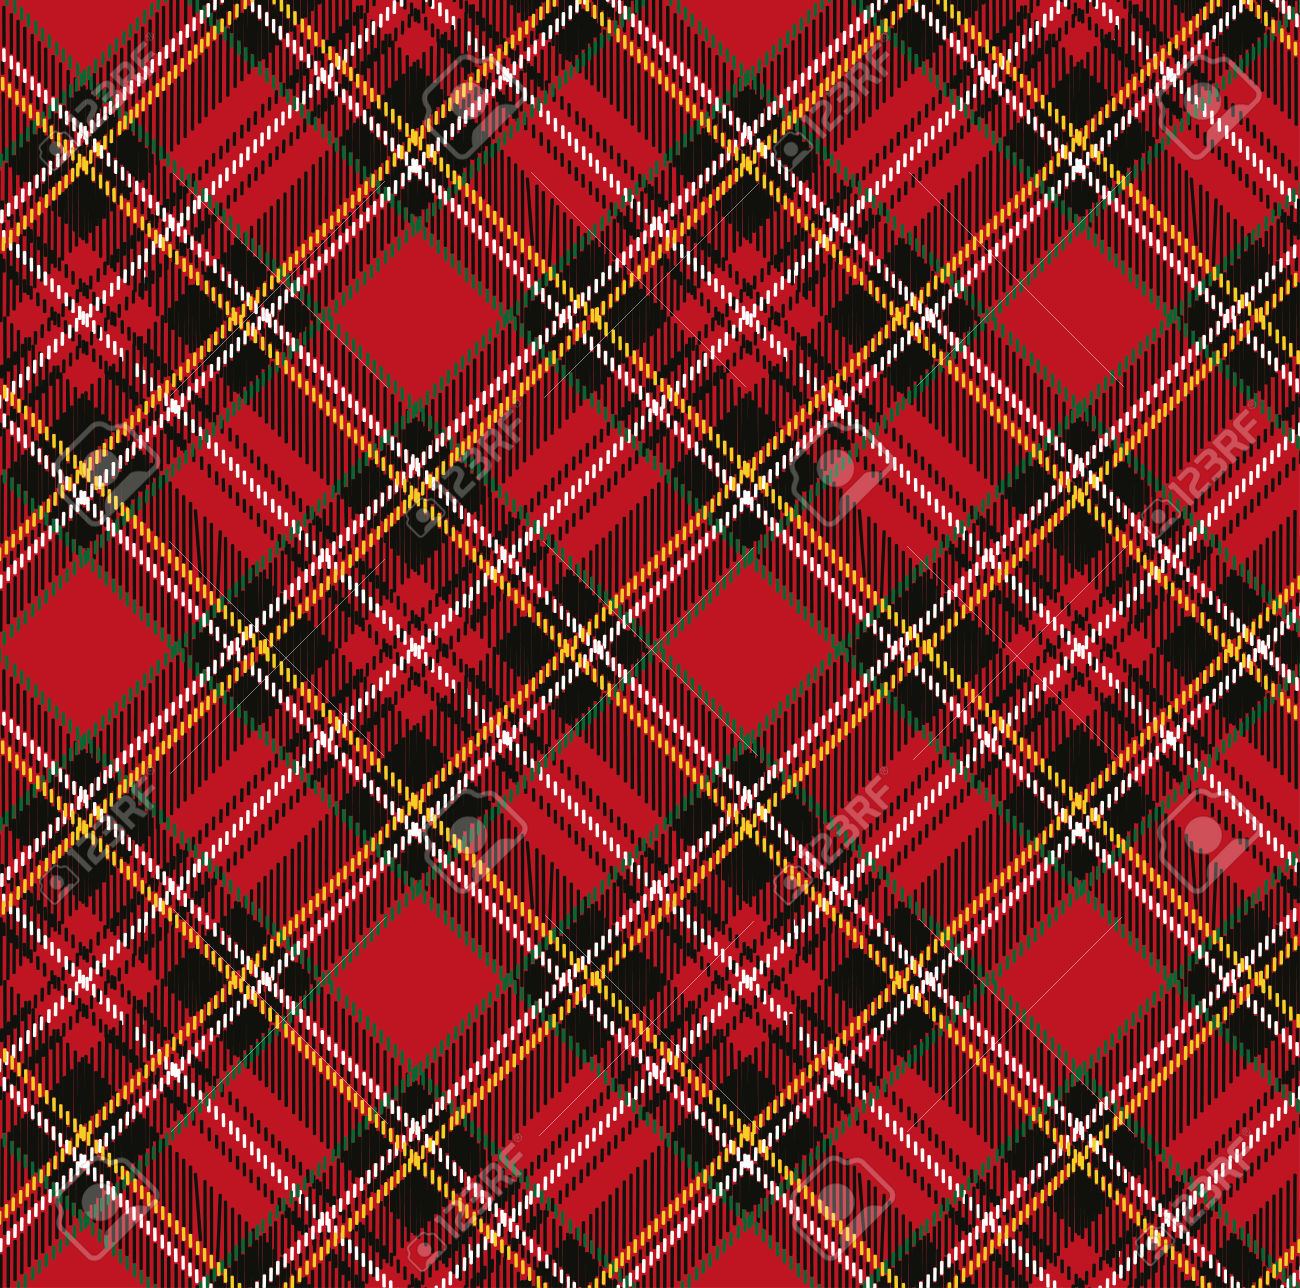 Desktop Wallpaper Quotes Love Download Red Tartan Plaid Wallpaper Gallery